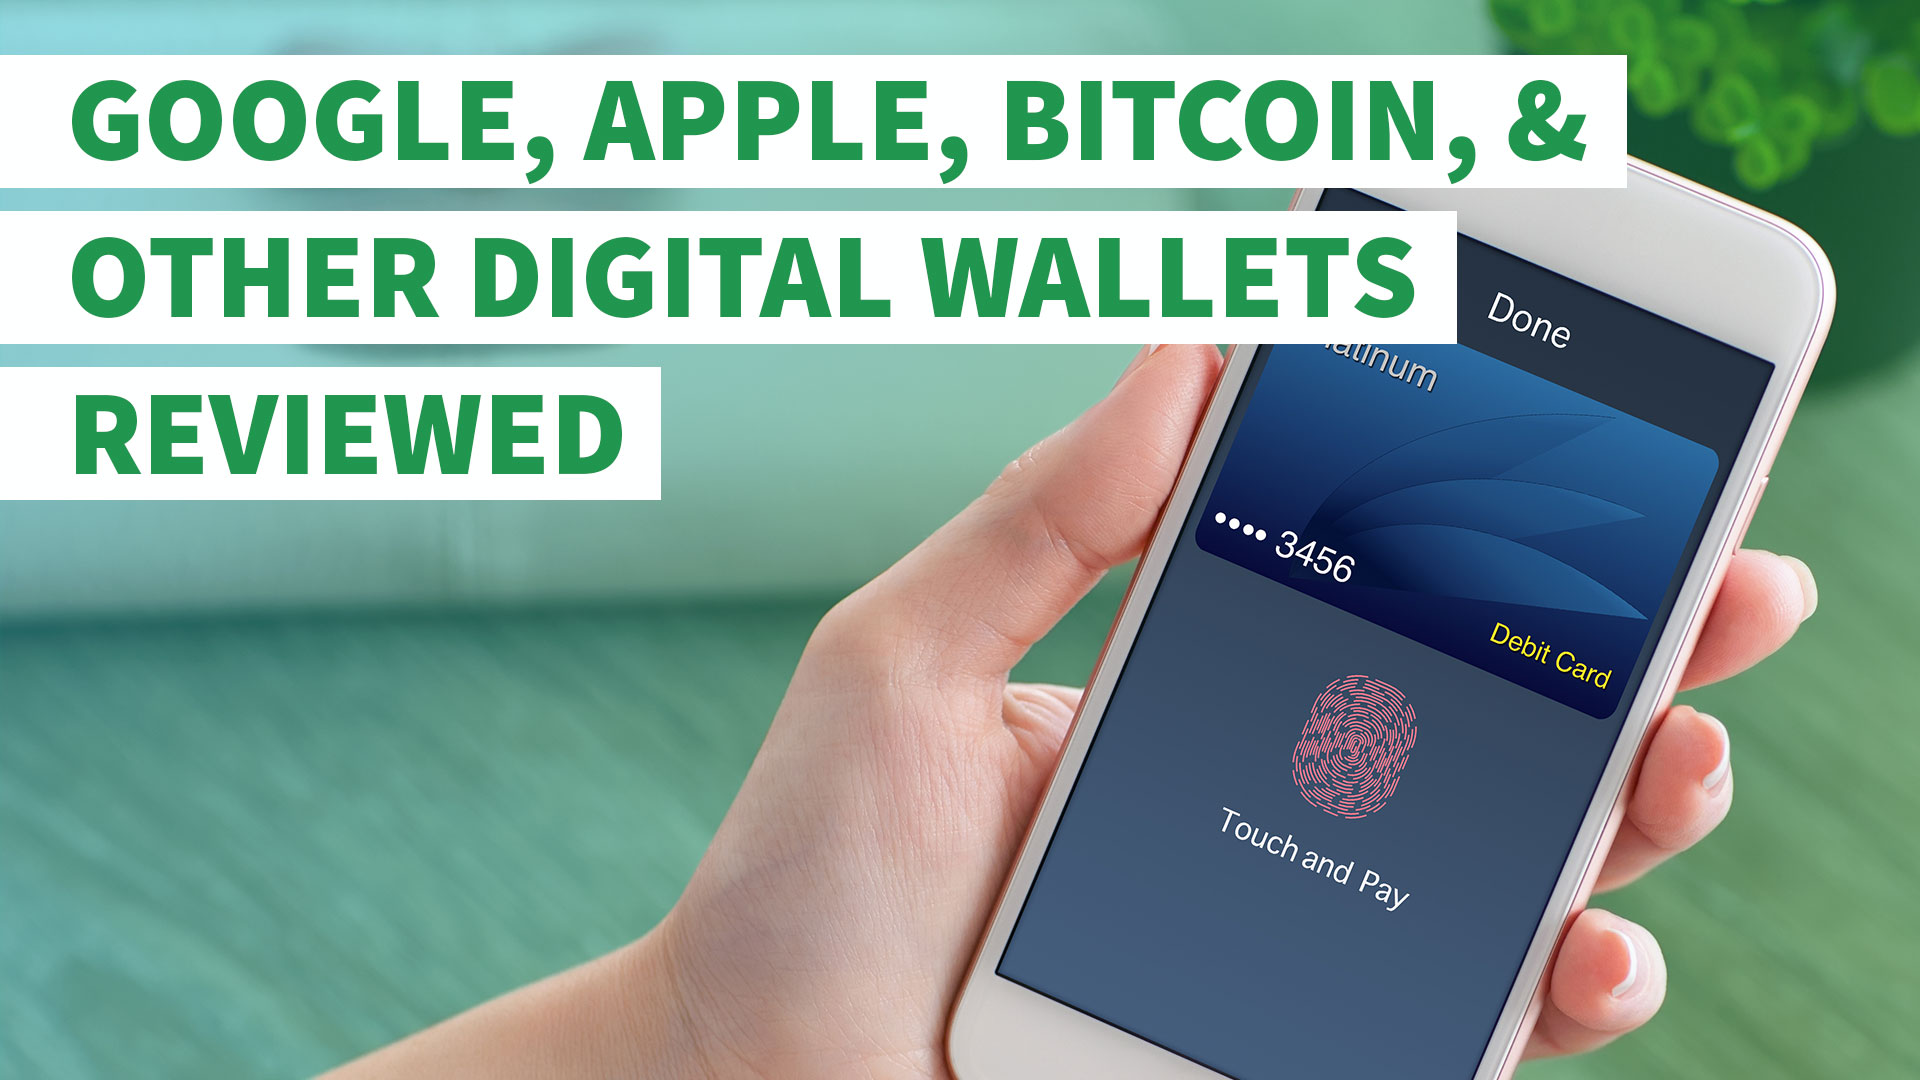 Google, Apple, Bitcoin and 4 Other Digital Wallets Reviewed ...